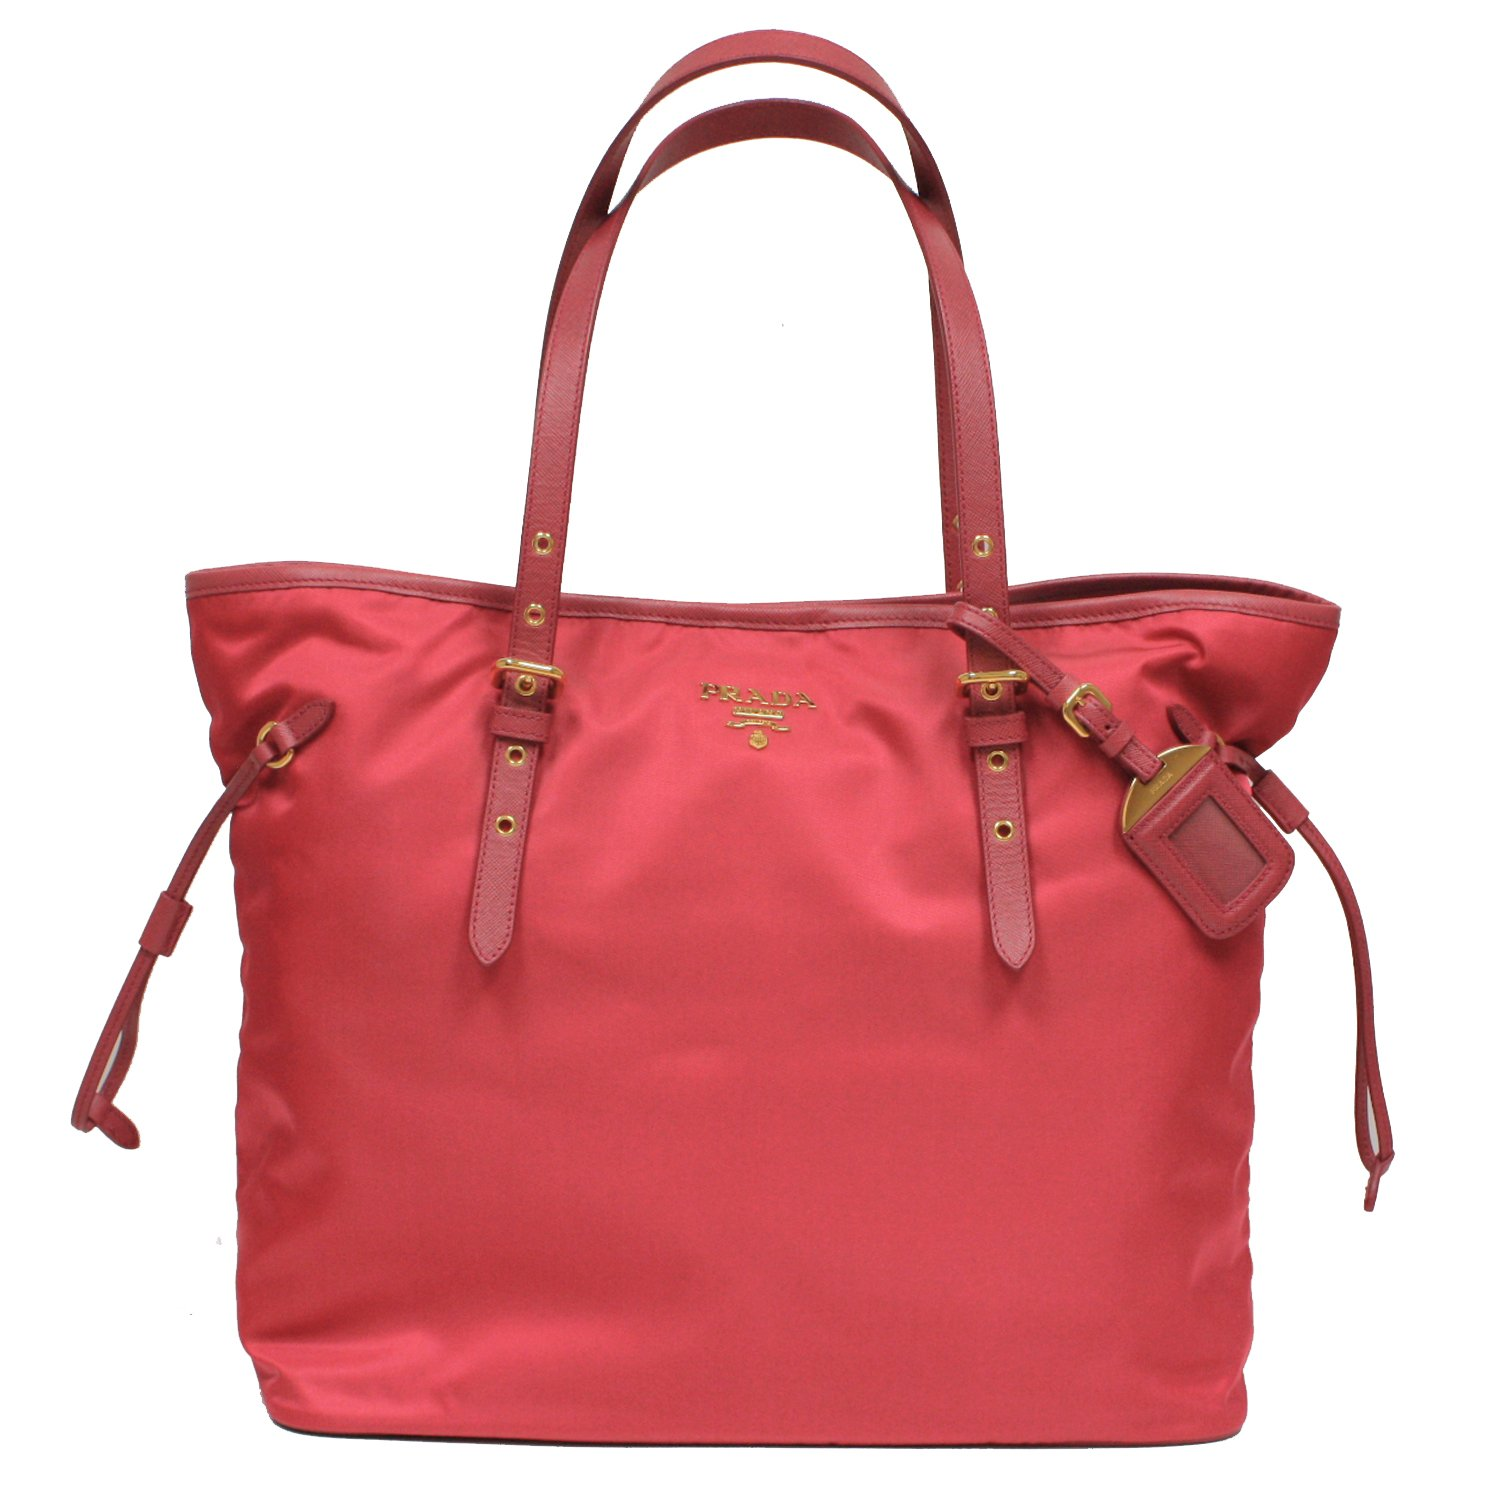 0b3fe868de34 Amazon.com  Prada Tessuto Saffian Pink Nylon Leather Shopping Tote Shoulder  Bag Large BR4997  Shoes